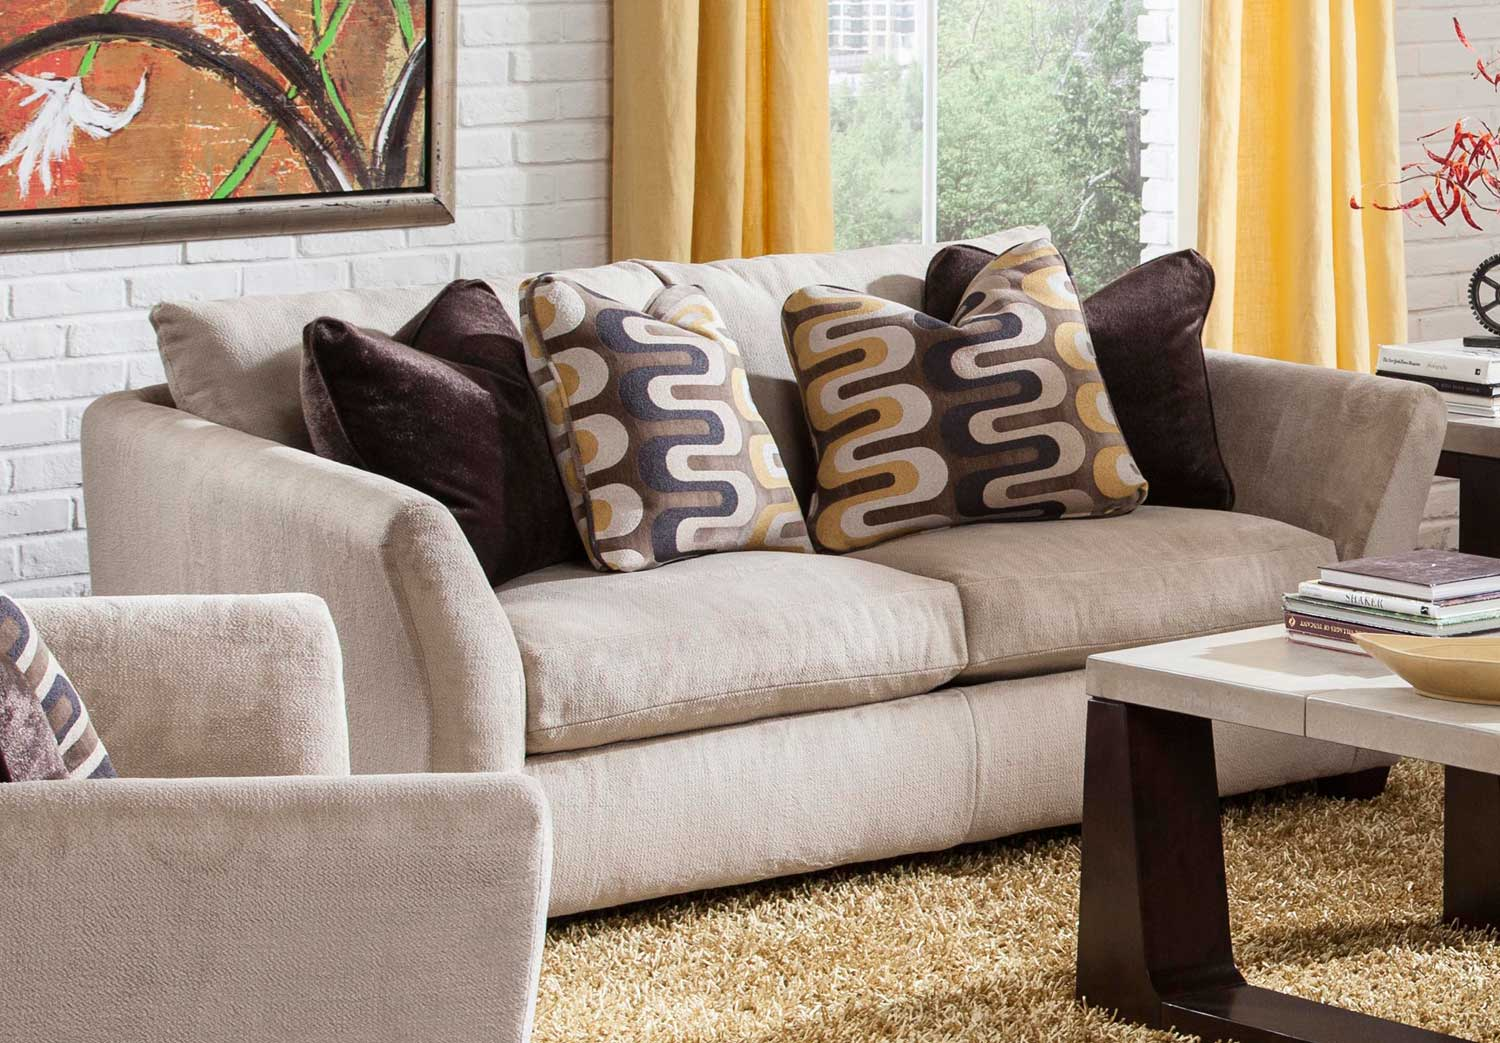 Jackson Brighton Loveseat - Foam